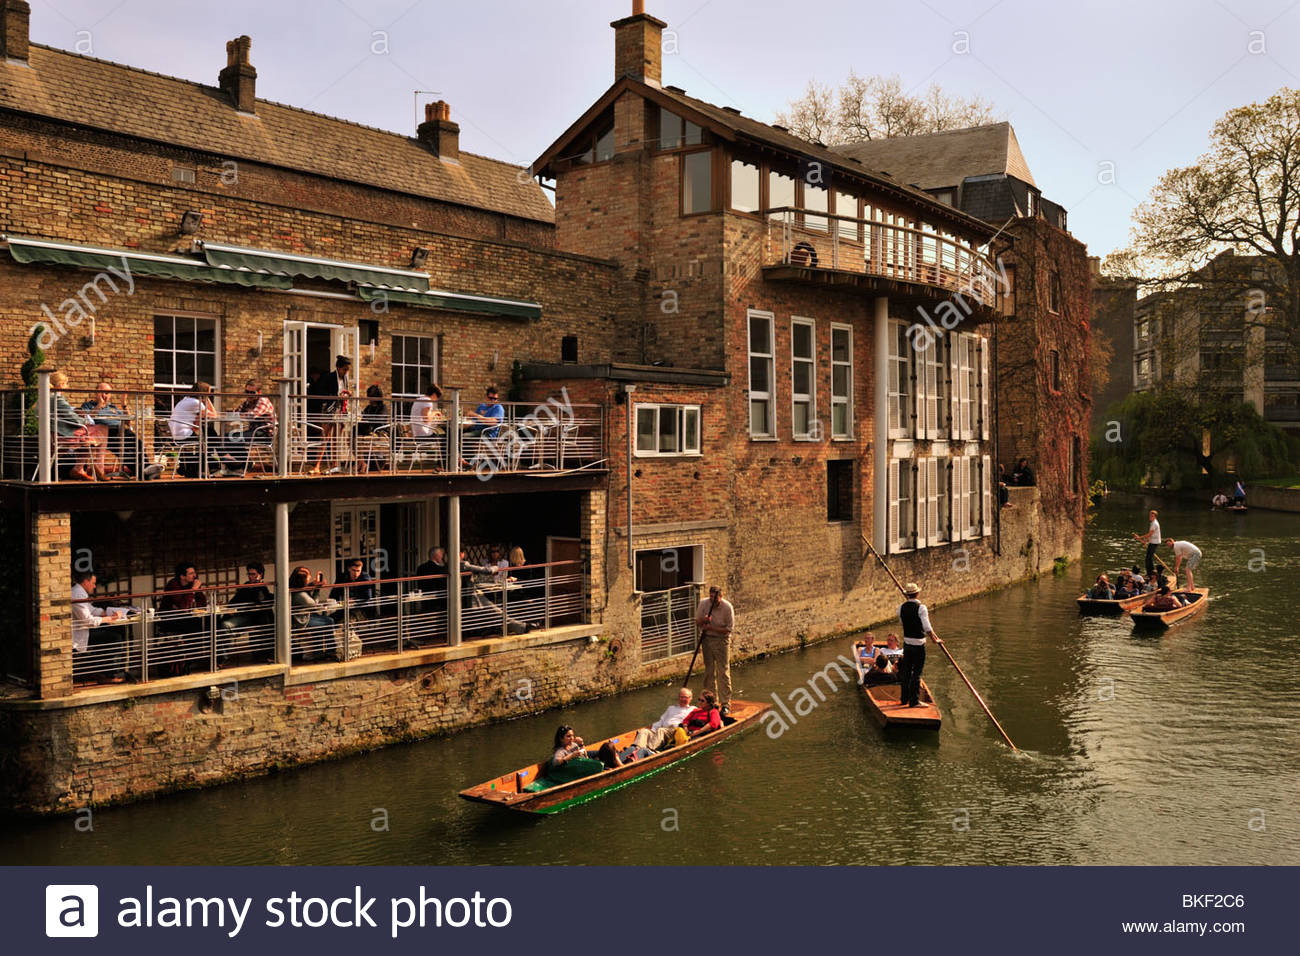 People in riverside Bar watching Punters on the River Cam, Cambridge - Stock Image